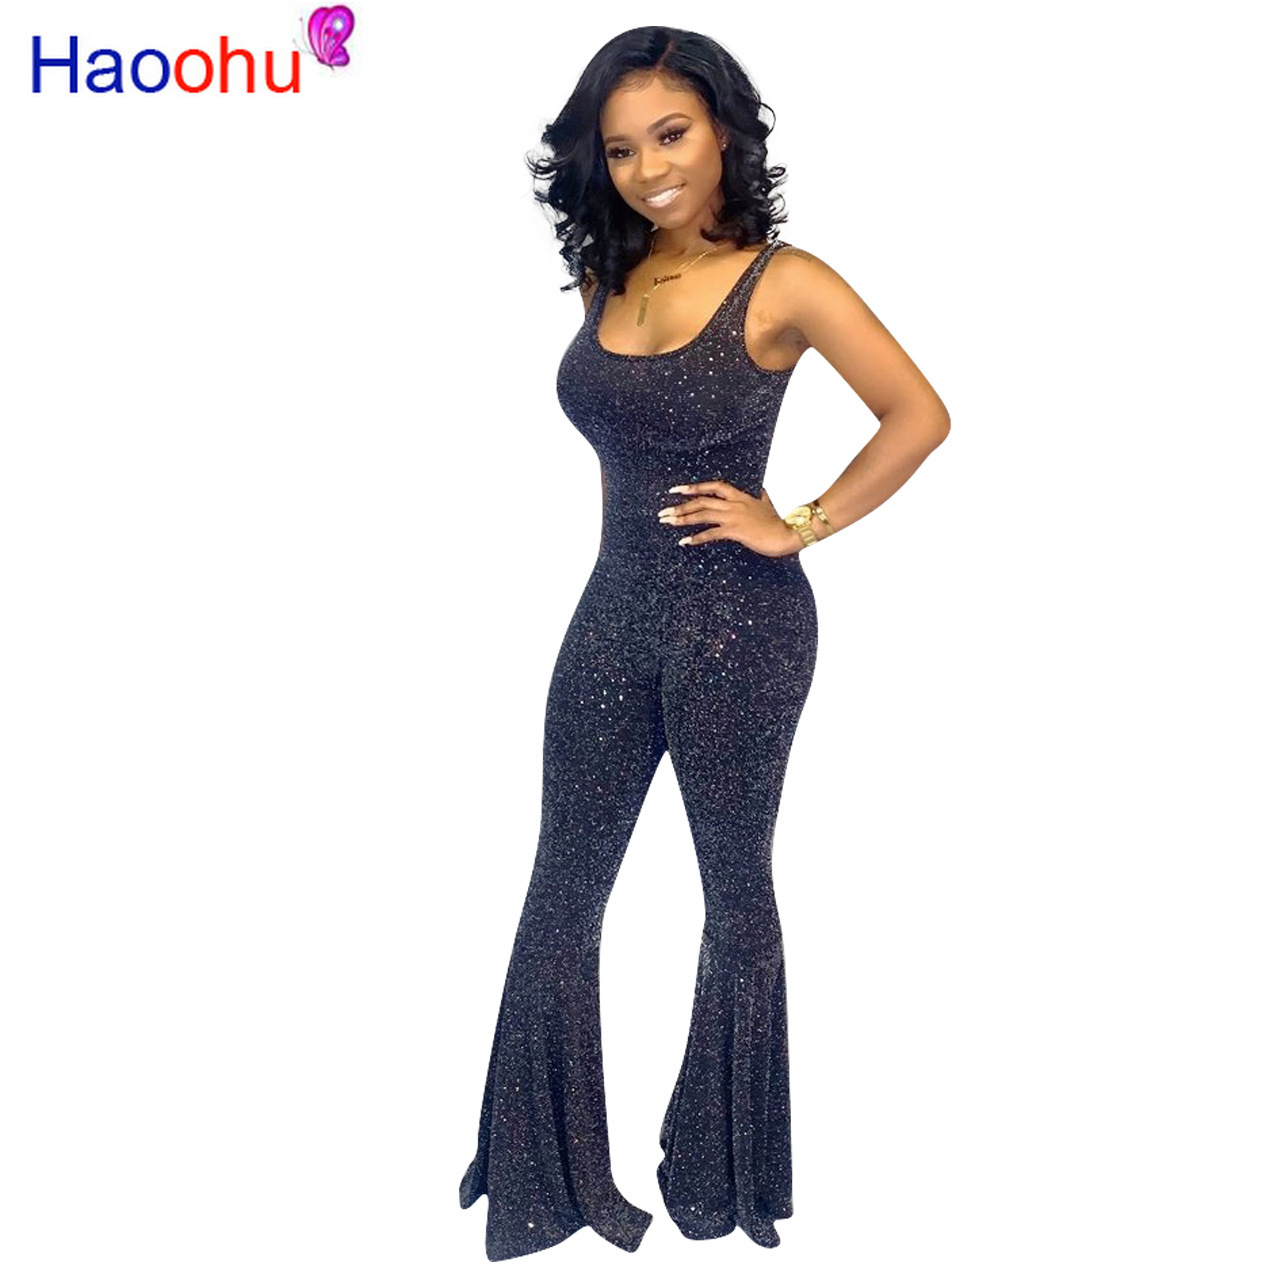 Spaghetti Strap Sexy Bell Bottom   Jumpsuits   for Women Open Back Low Cut Skinny Party Club Playsuit Summer Black One Piece Romper